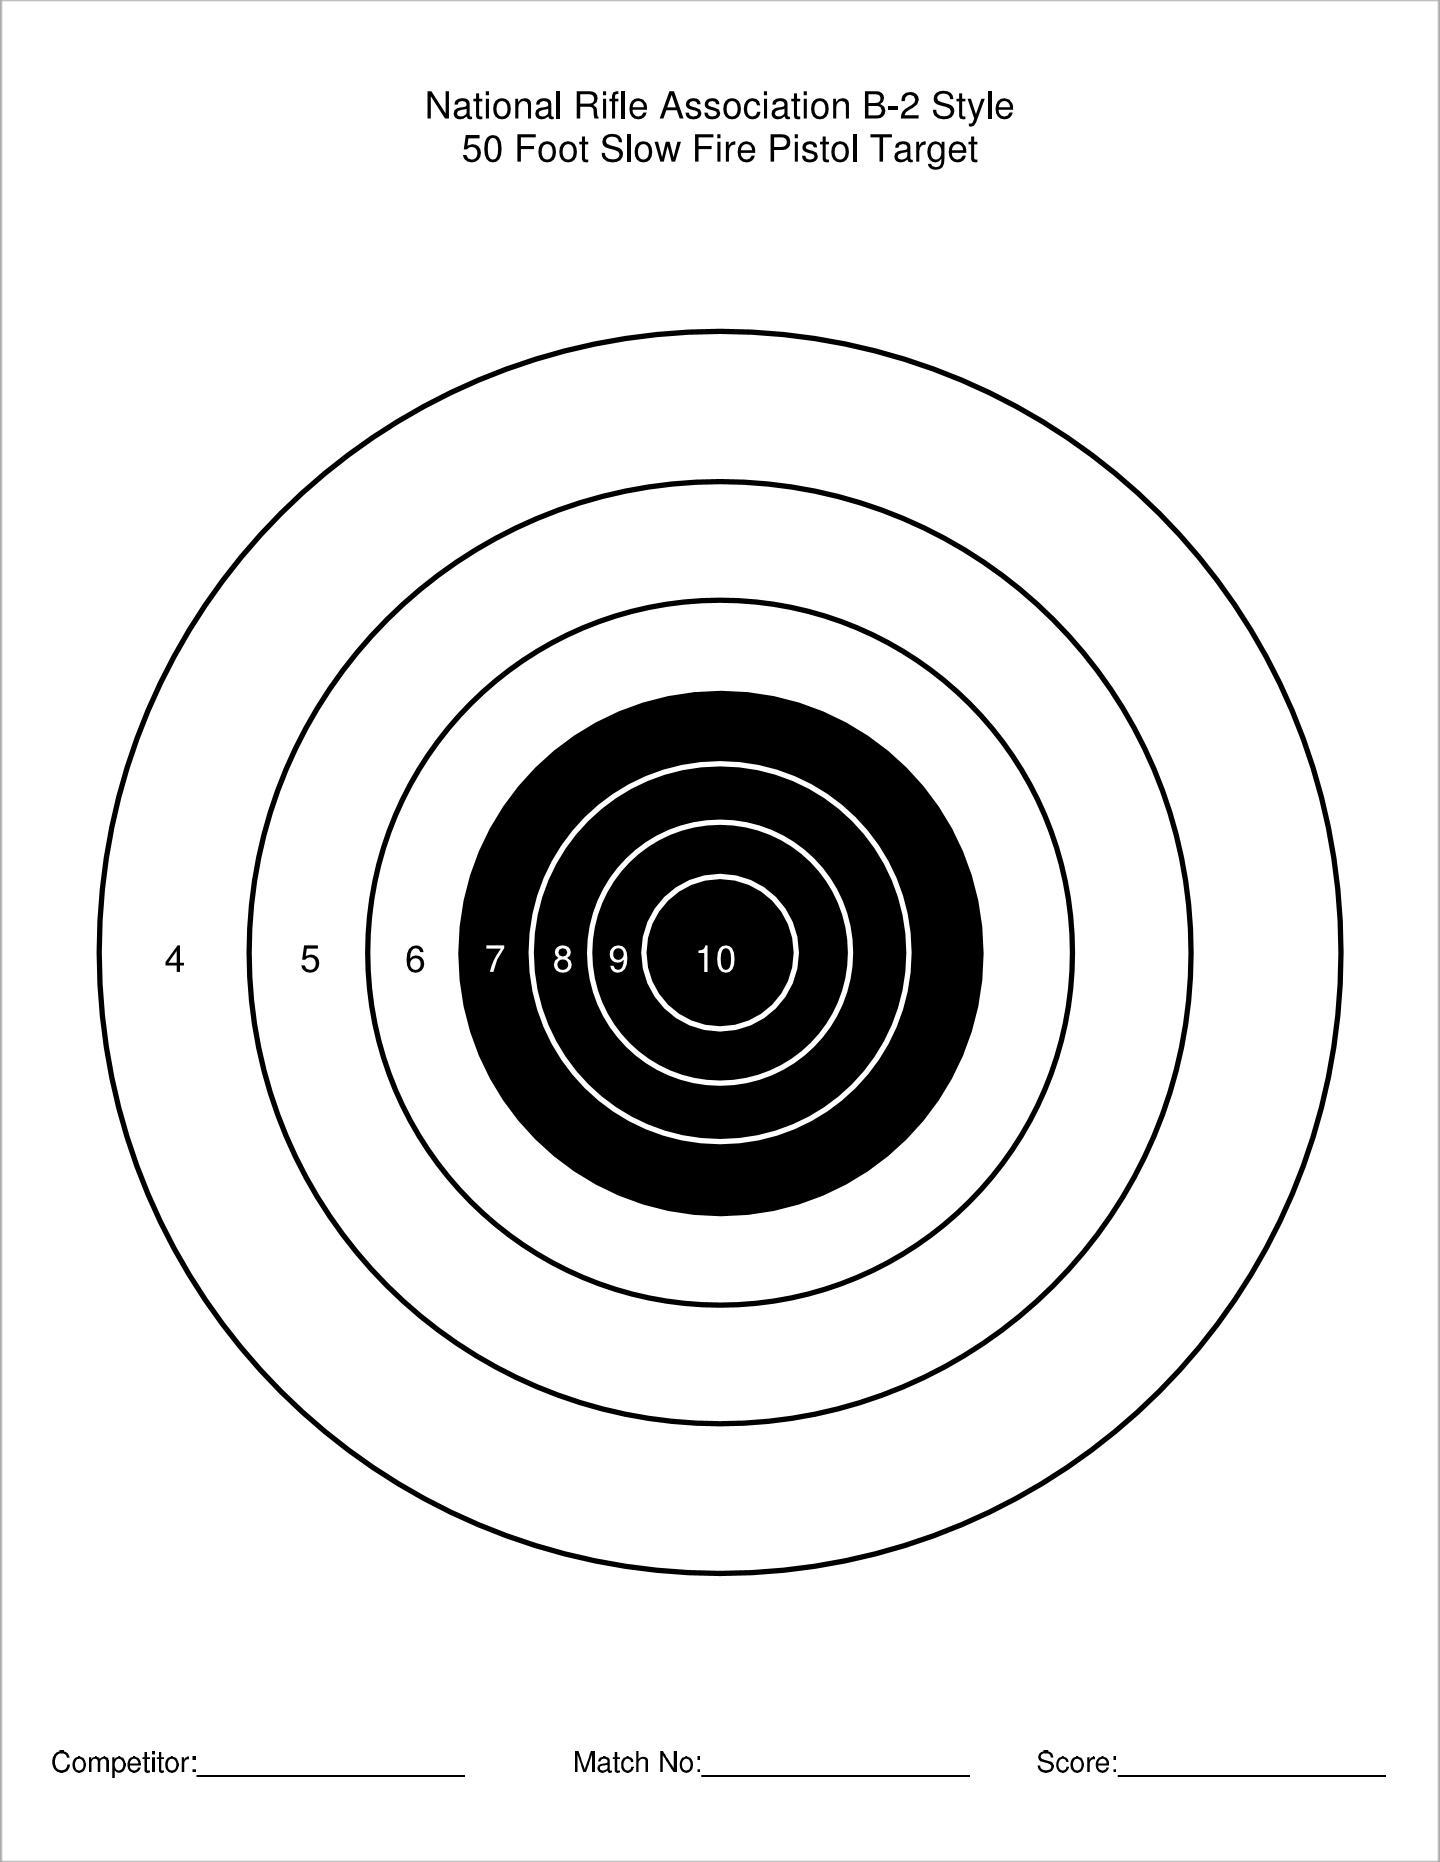 graphic regarding Printable Nra Pistol Targets named Printable Focus Variety QBall45